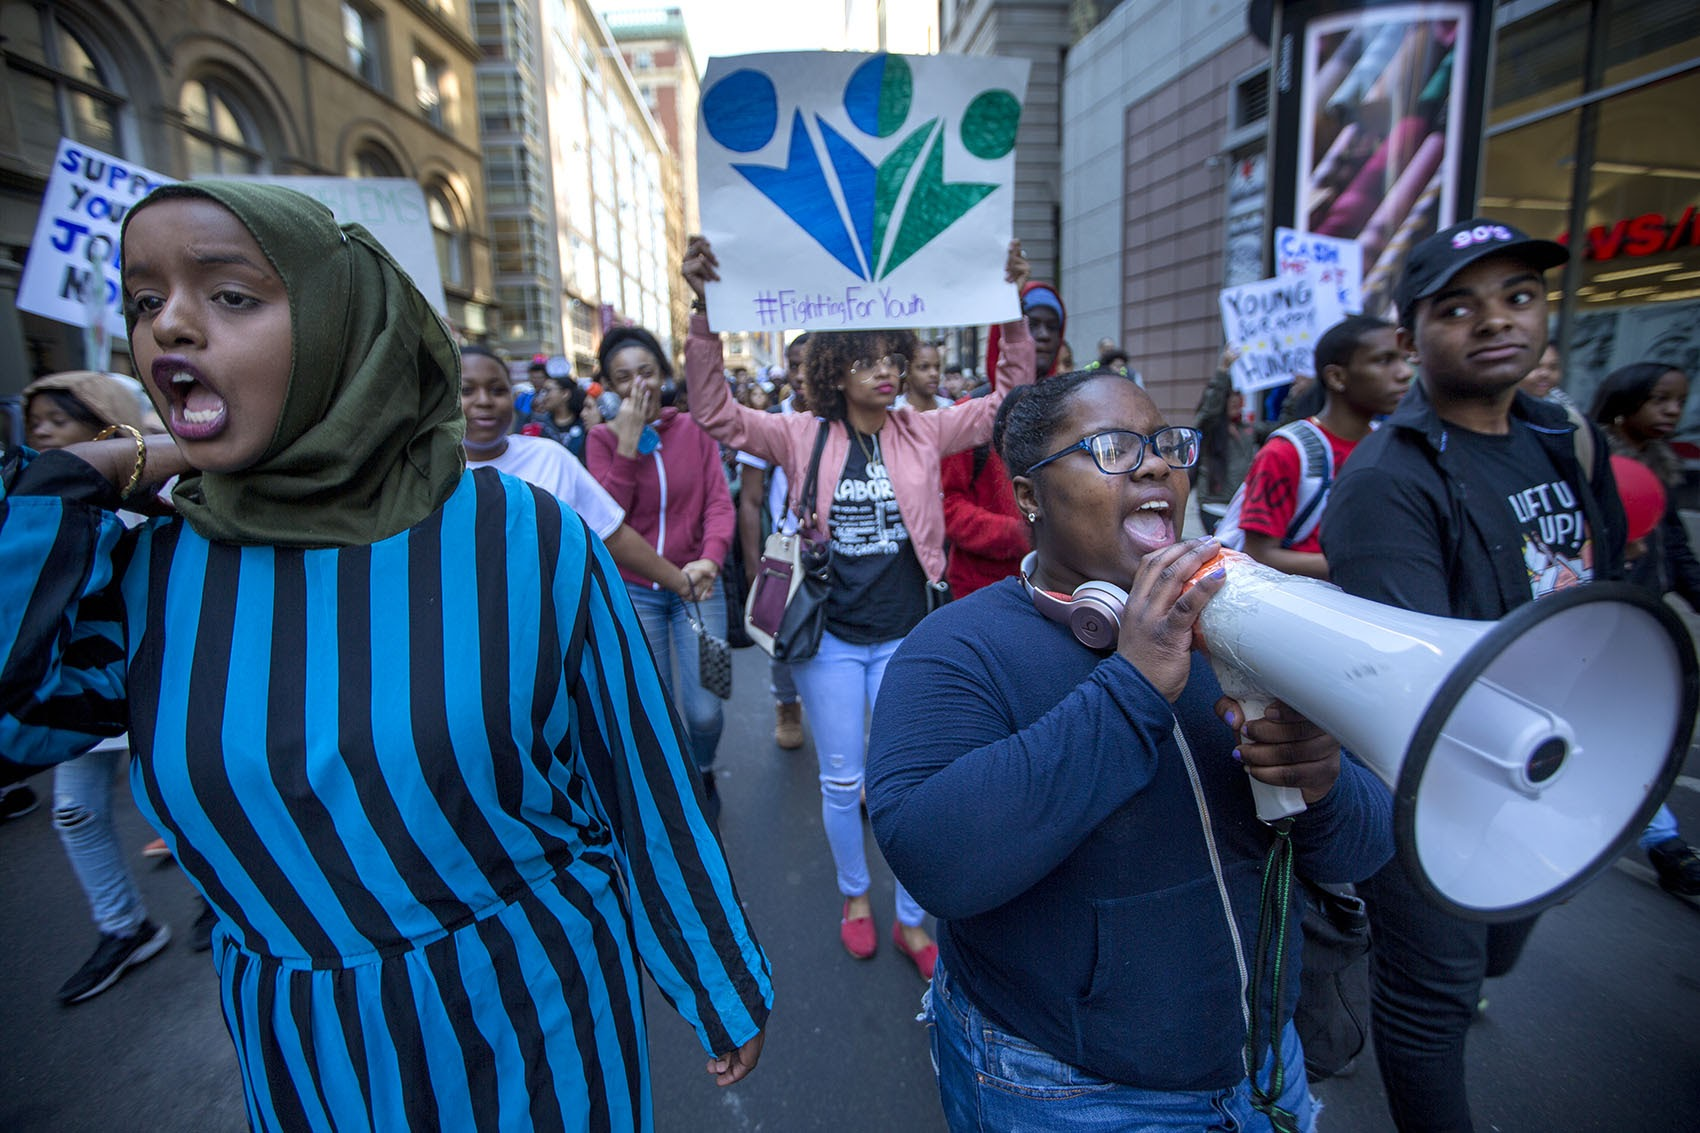 Youth activists march  through Downtown Crossing Thursday afternoon. They are calling on state and city leaders to fund more youth jobs and reform the juvenile justice system. (Jesse Costa/WBUR)